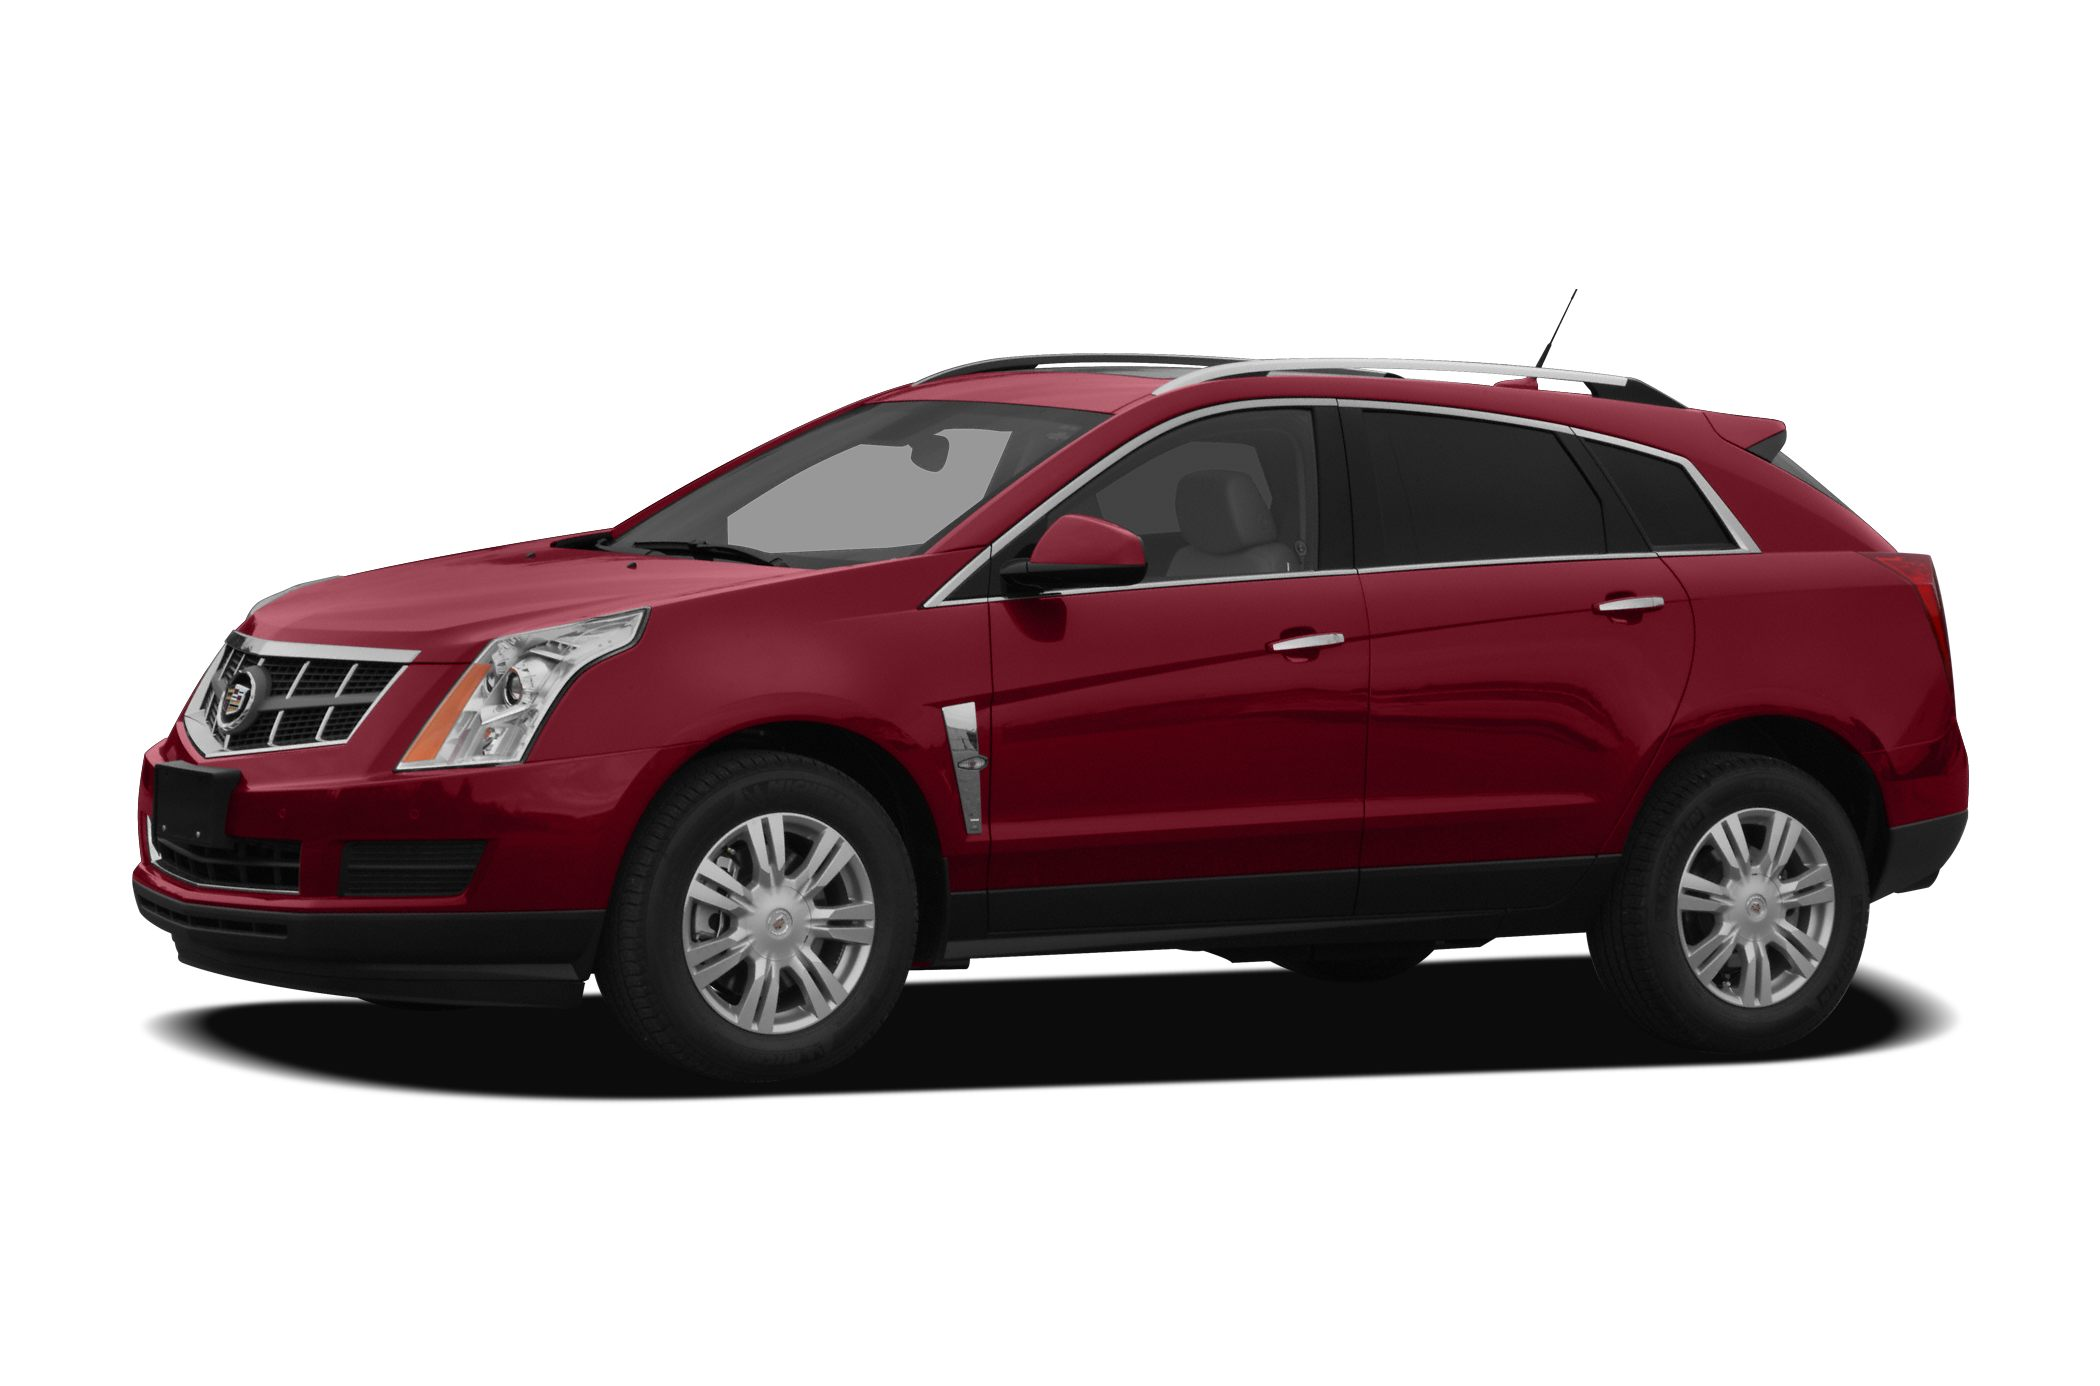 2012 Cadillac SRX Base SUV for sale in Bethesda for $25,500 with 36,101 miles.